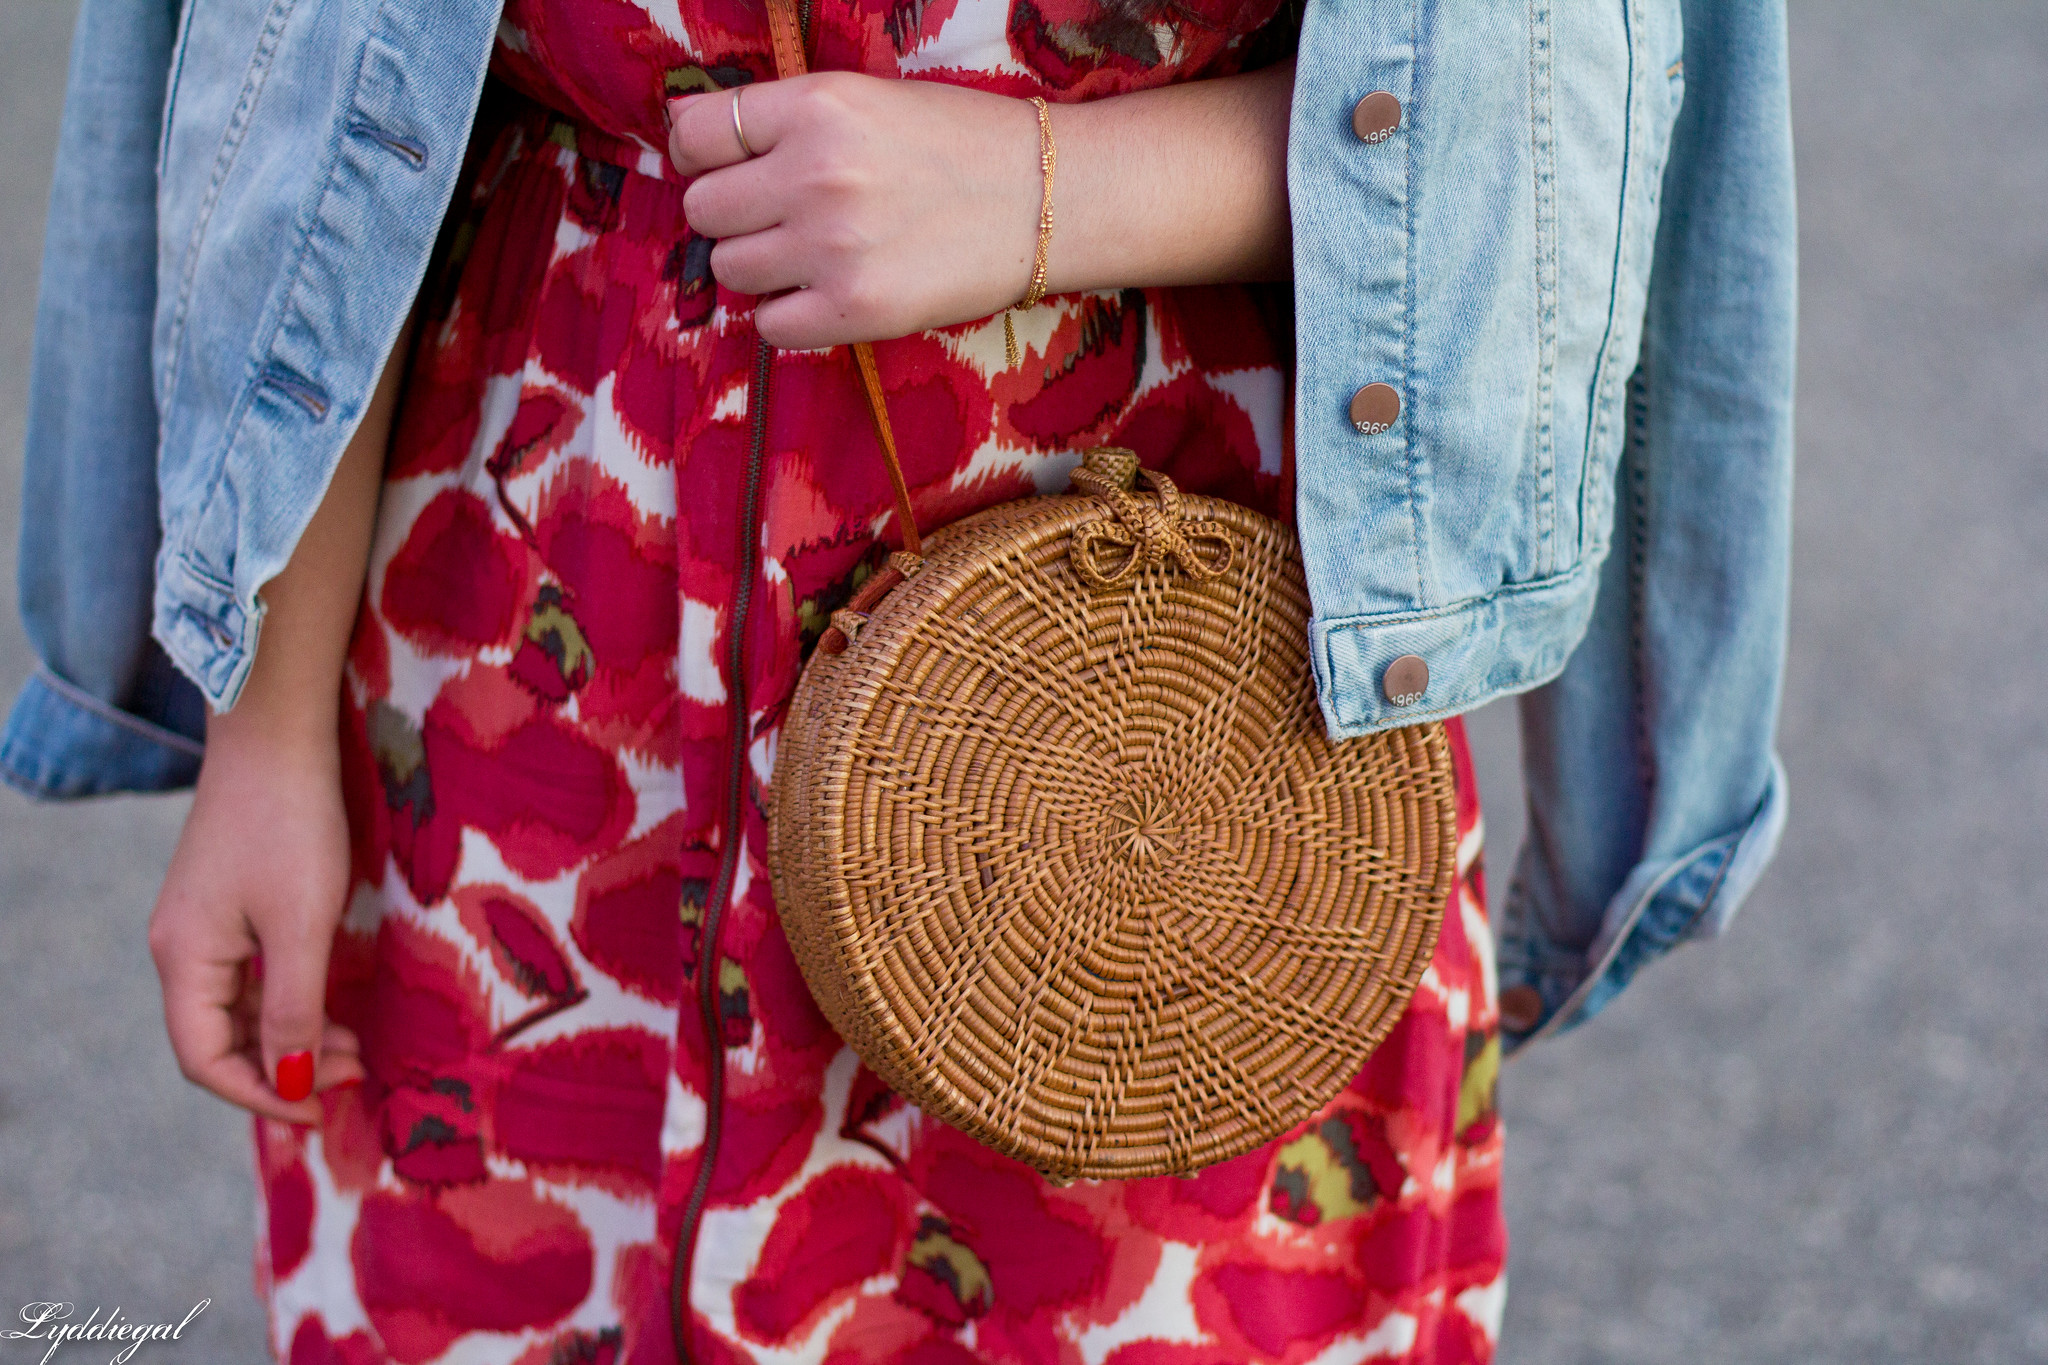 poppy dress, denim jacket, white converse, round rattan bag-3.jpg